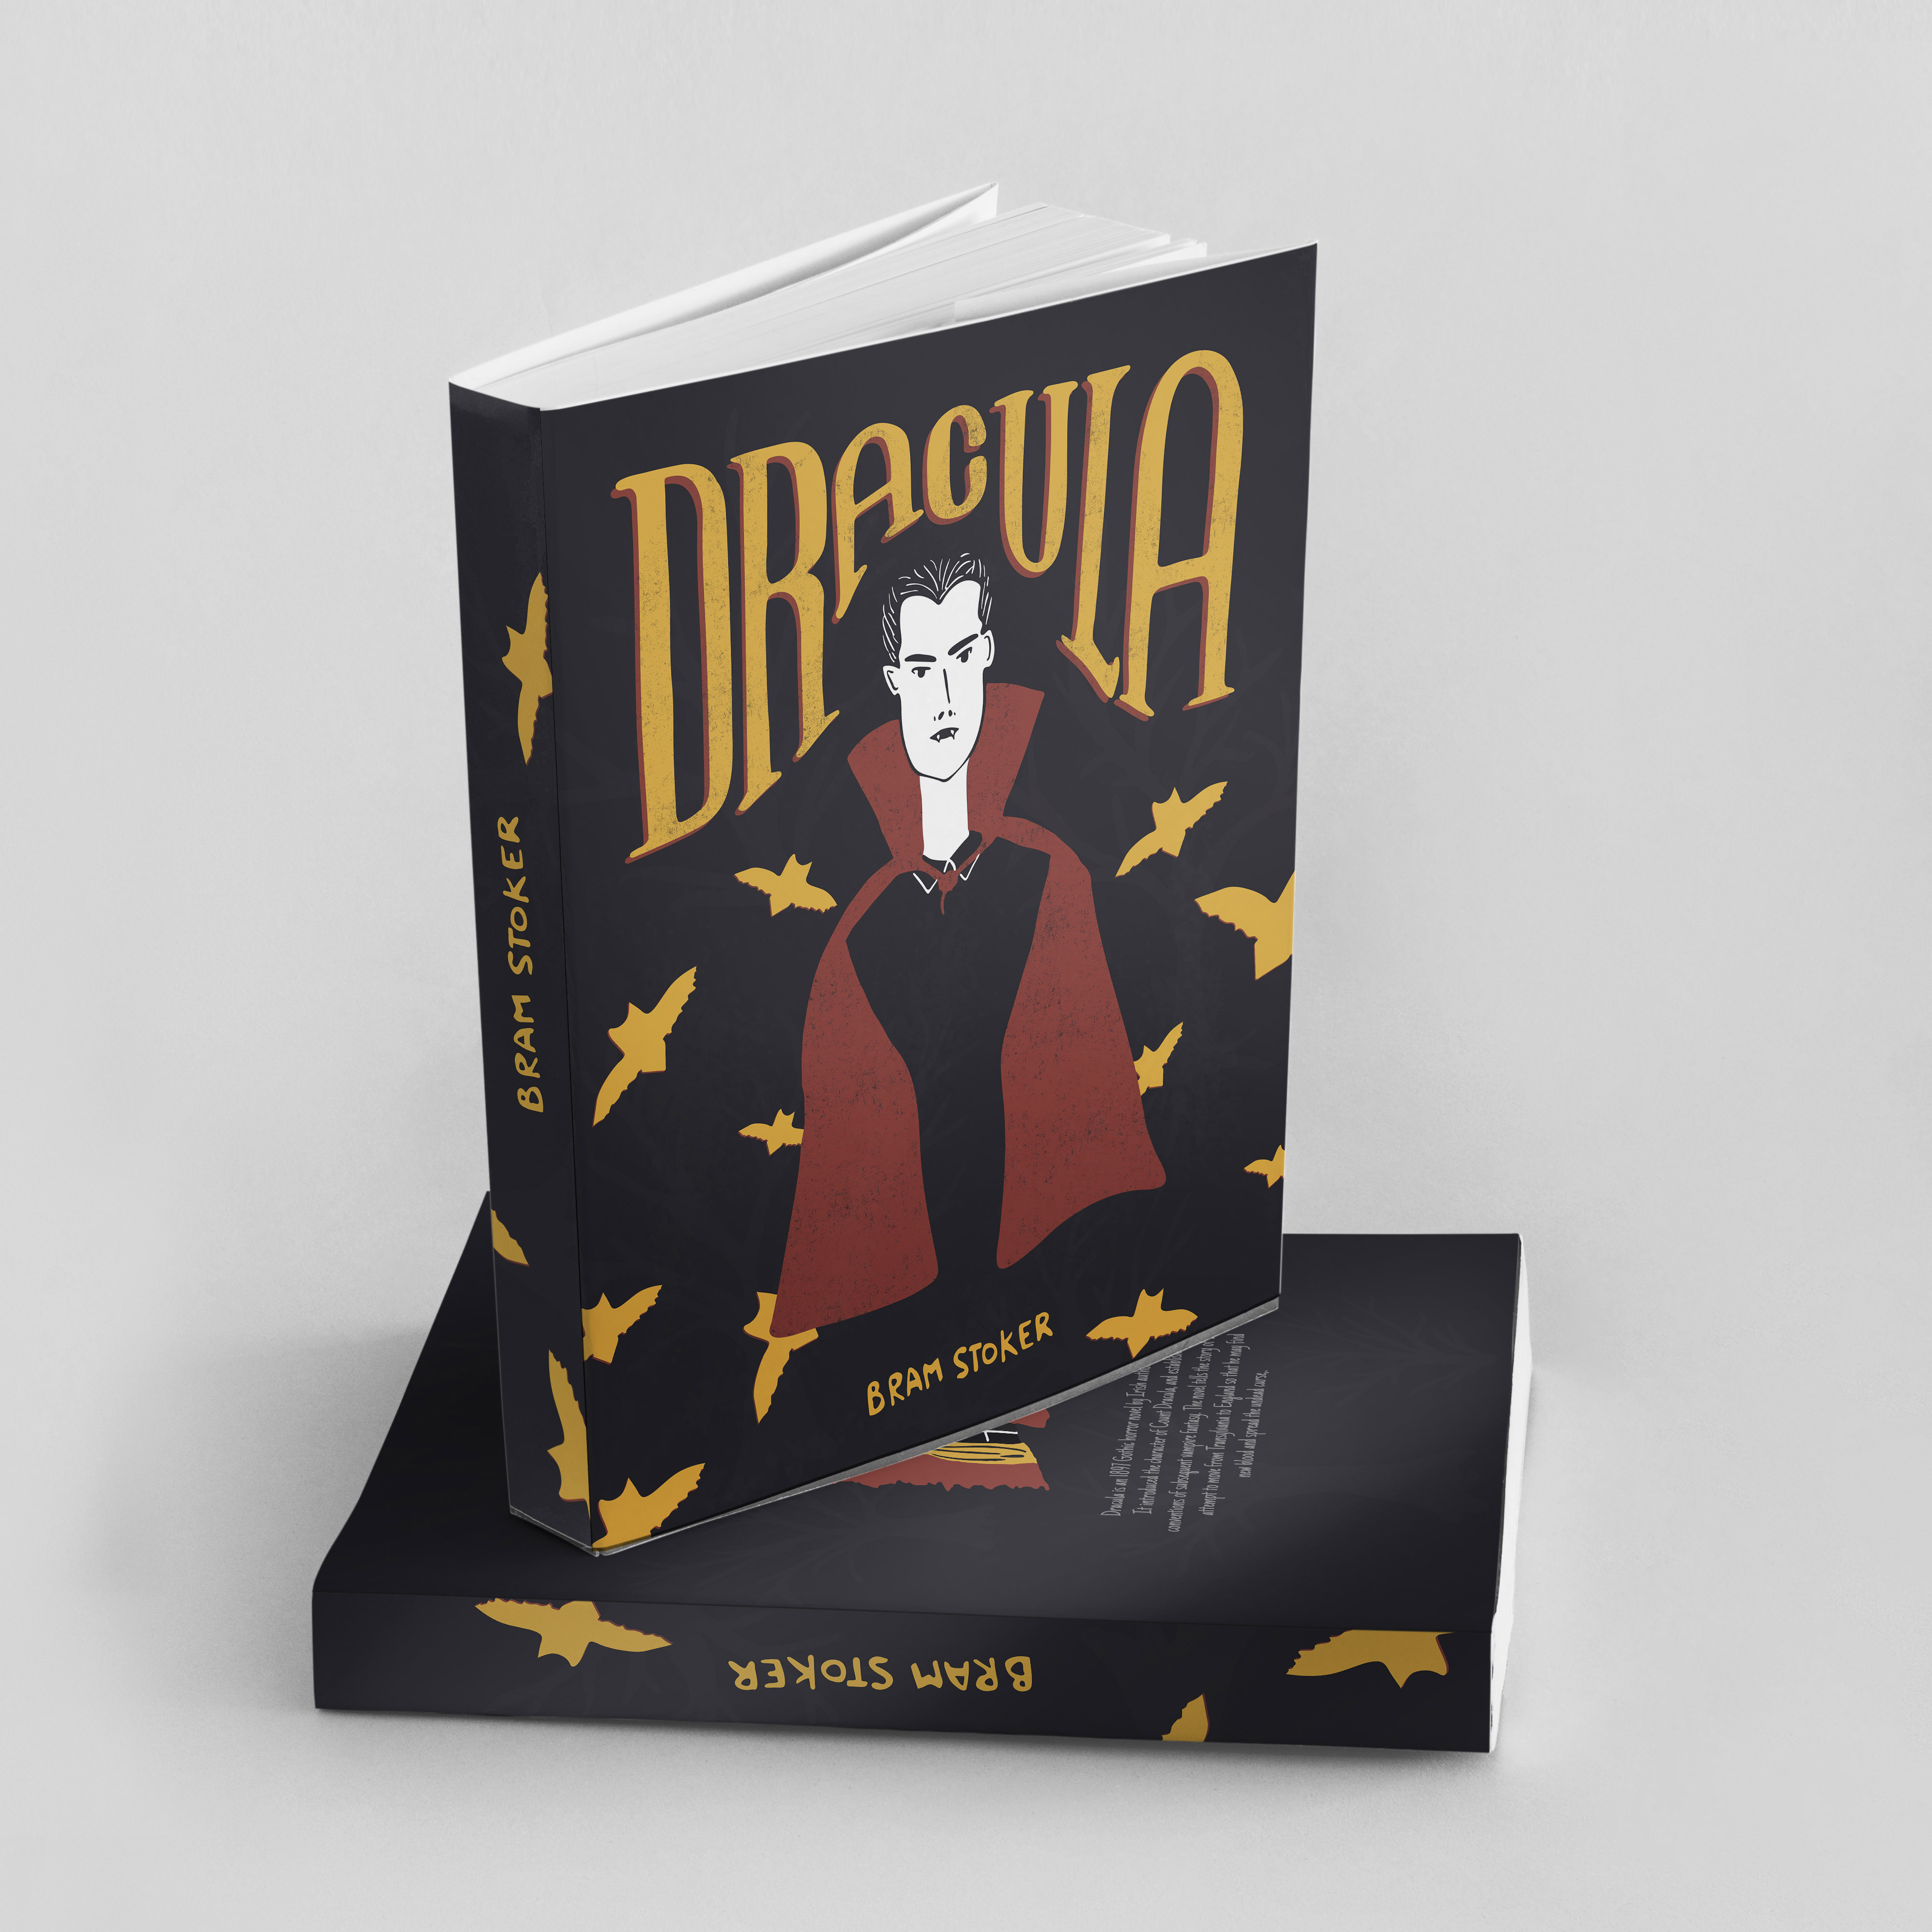 A photo of an illustrated book cover about Dracula. The cover is all black with orange font and Dracula in a red cape with orange bats flying around. The book is propped up under another book.